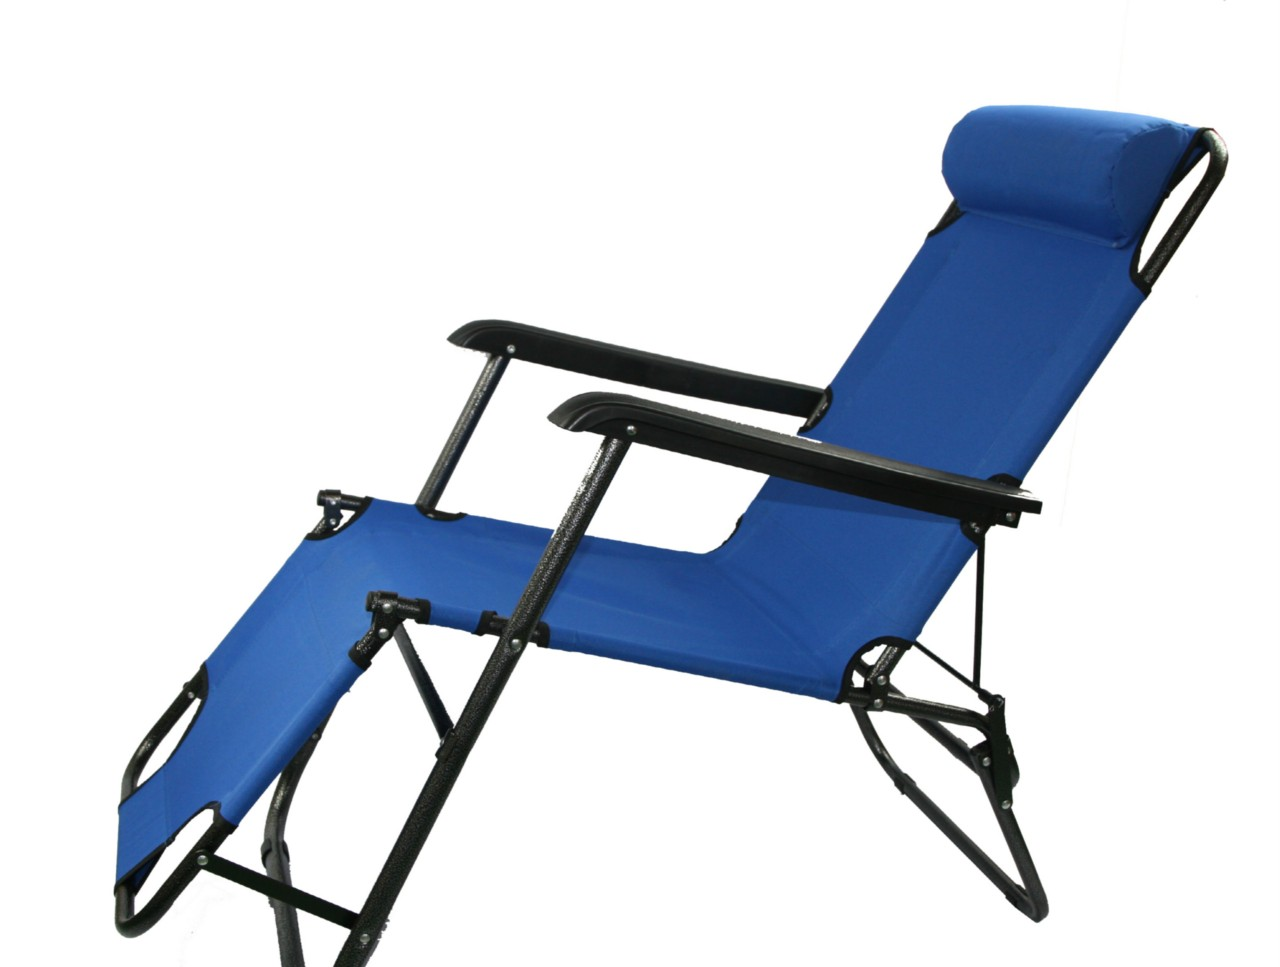 folding outdoor lounge chair queen anne covers amazon new light portable recliner